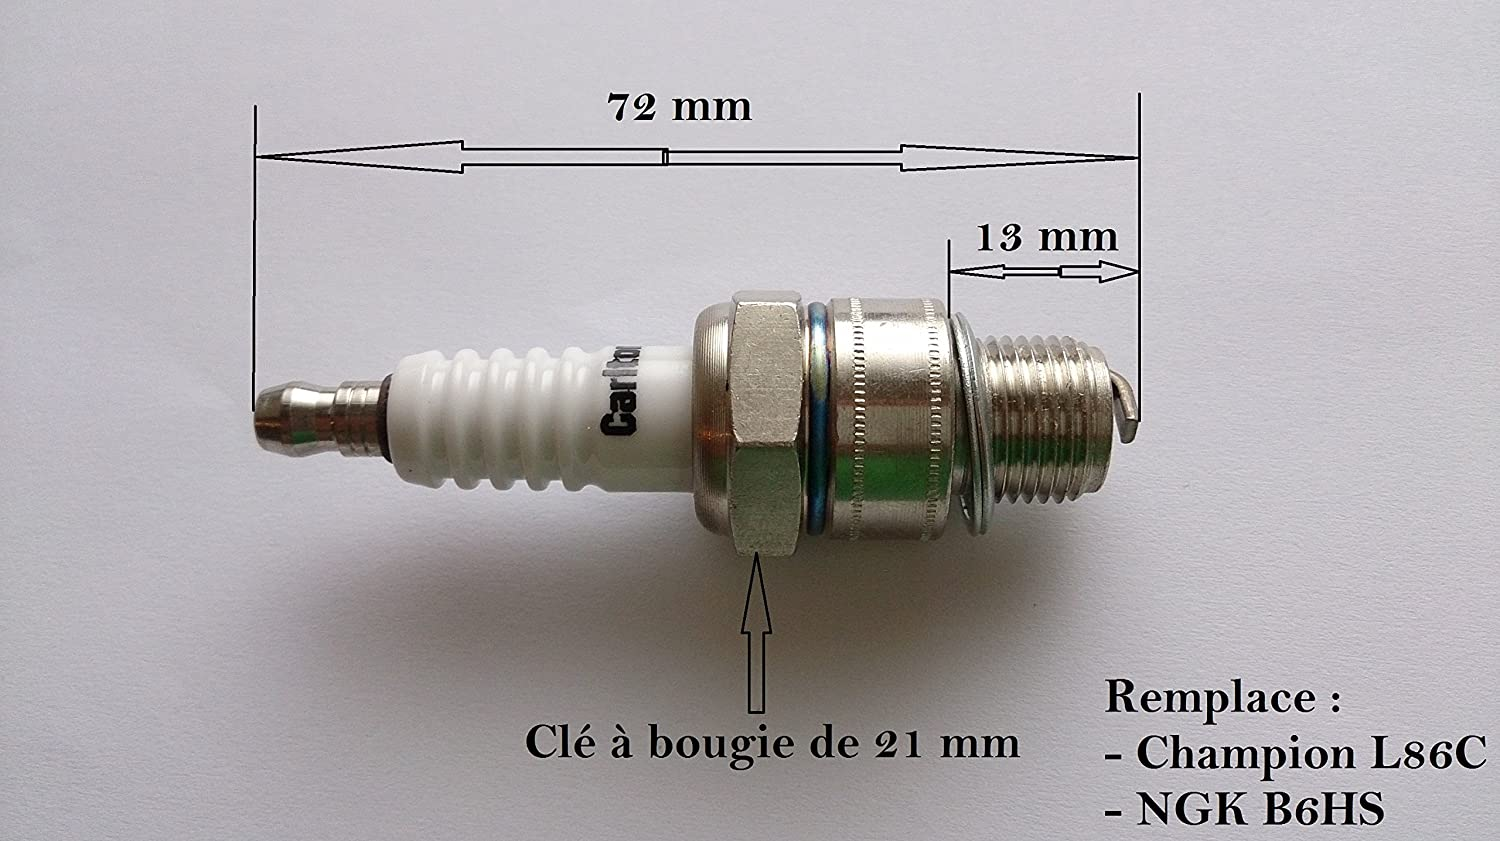 Candle for Large 2 Stroke Motor Replaces NGK B6HS L86C Champion Jardiaffaires 3770005428053